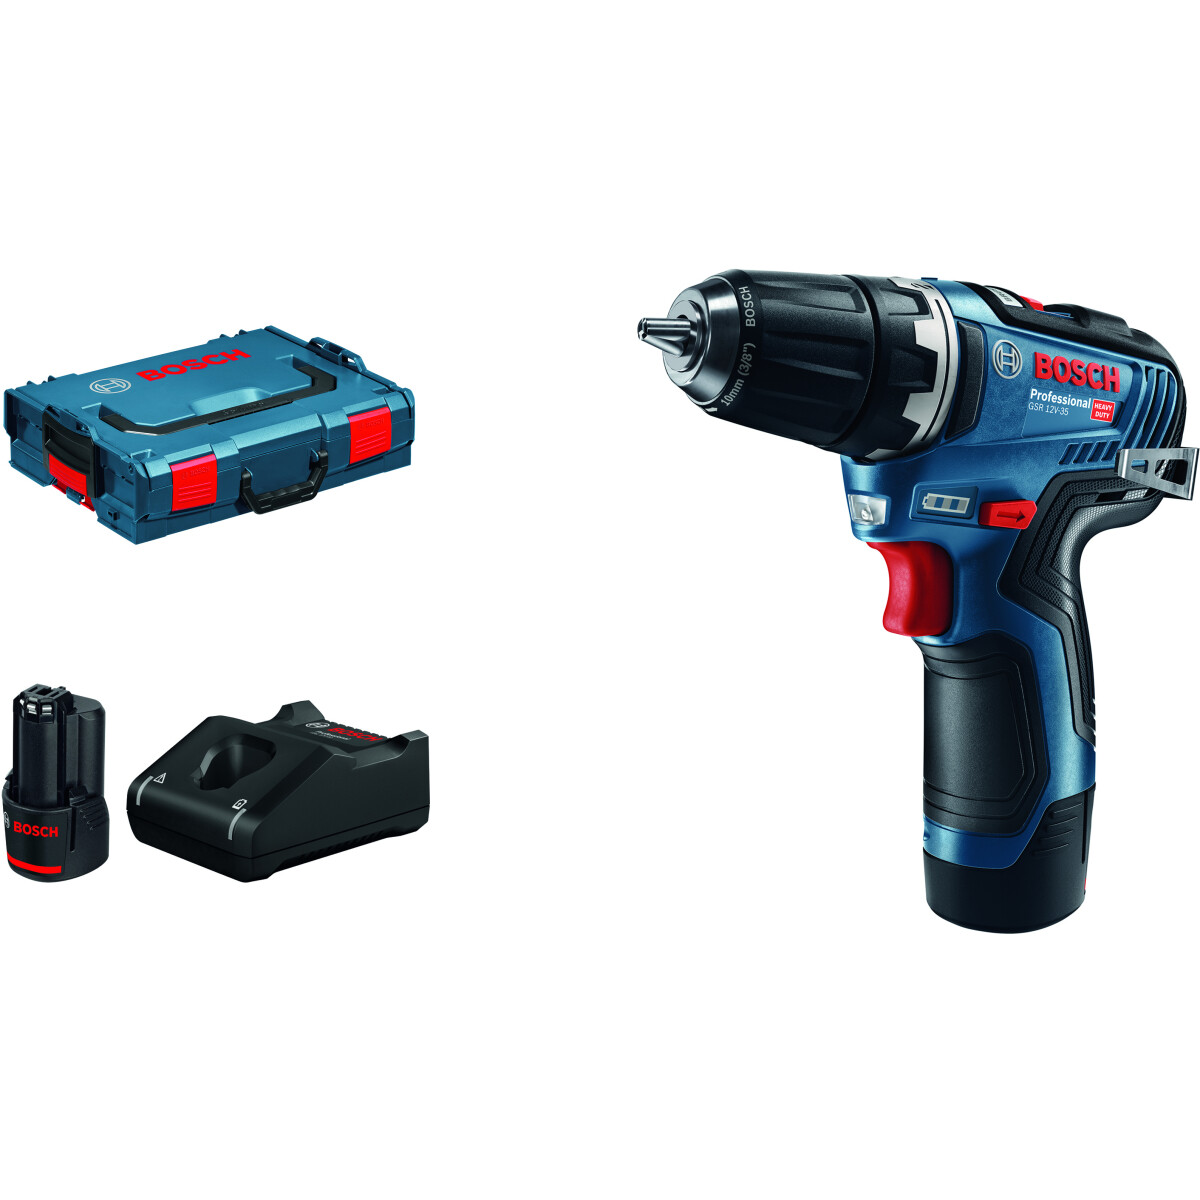 Bosch GSR 12V-35 12V Brushless 2-Speed Drill Driver with 2x3.0Ah Batteries in L-Boxx